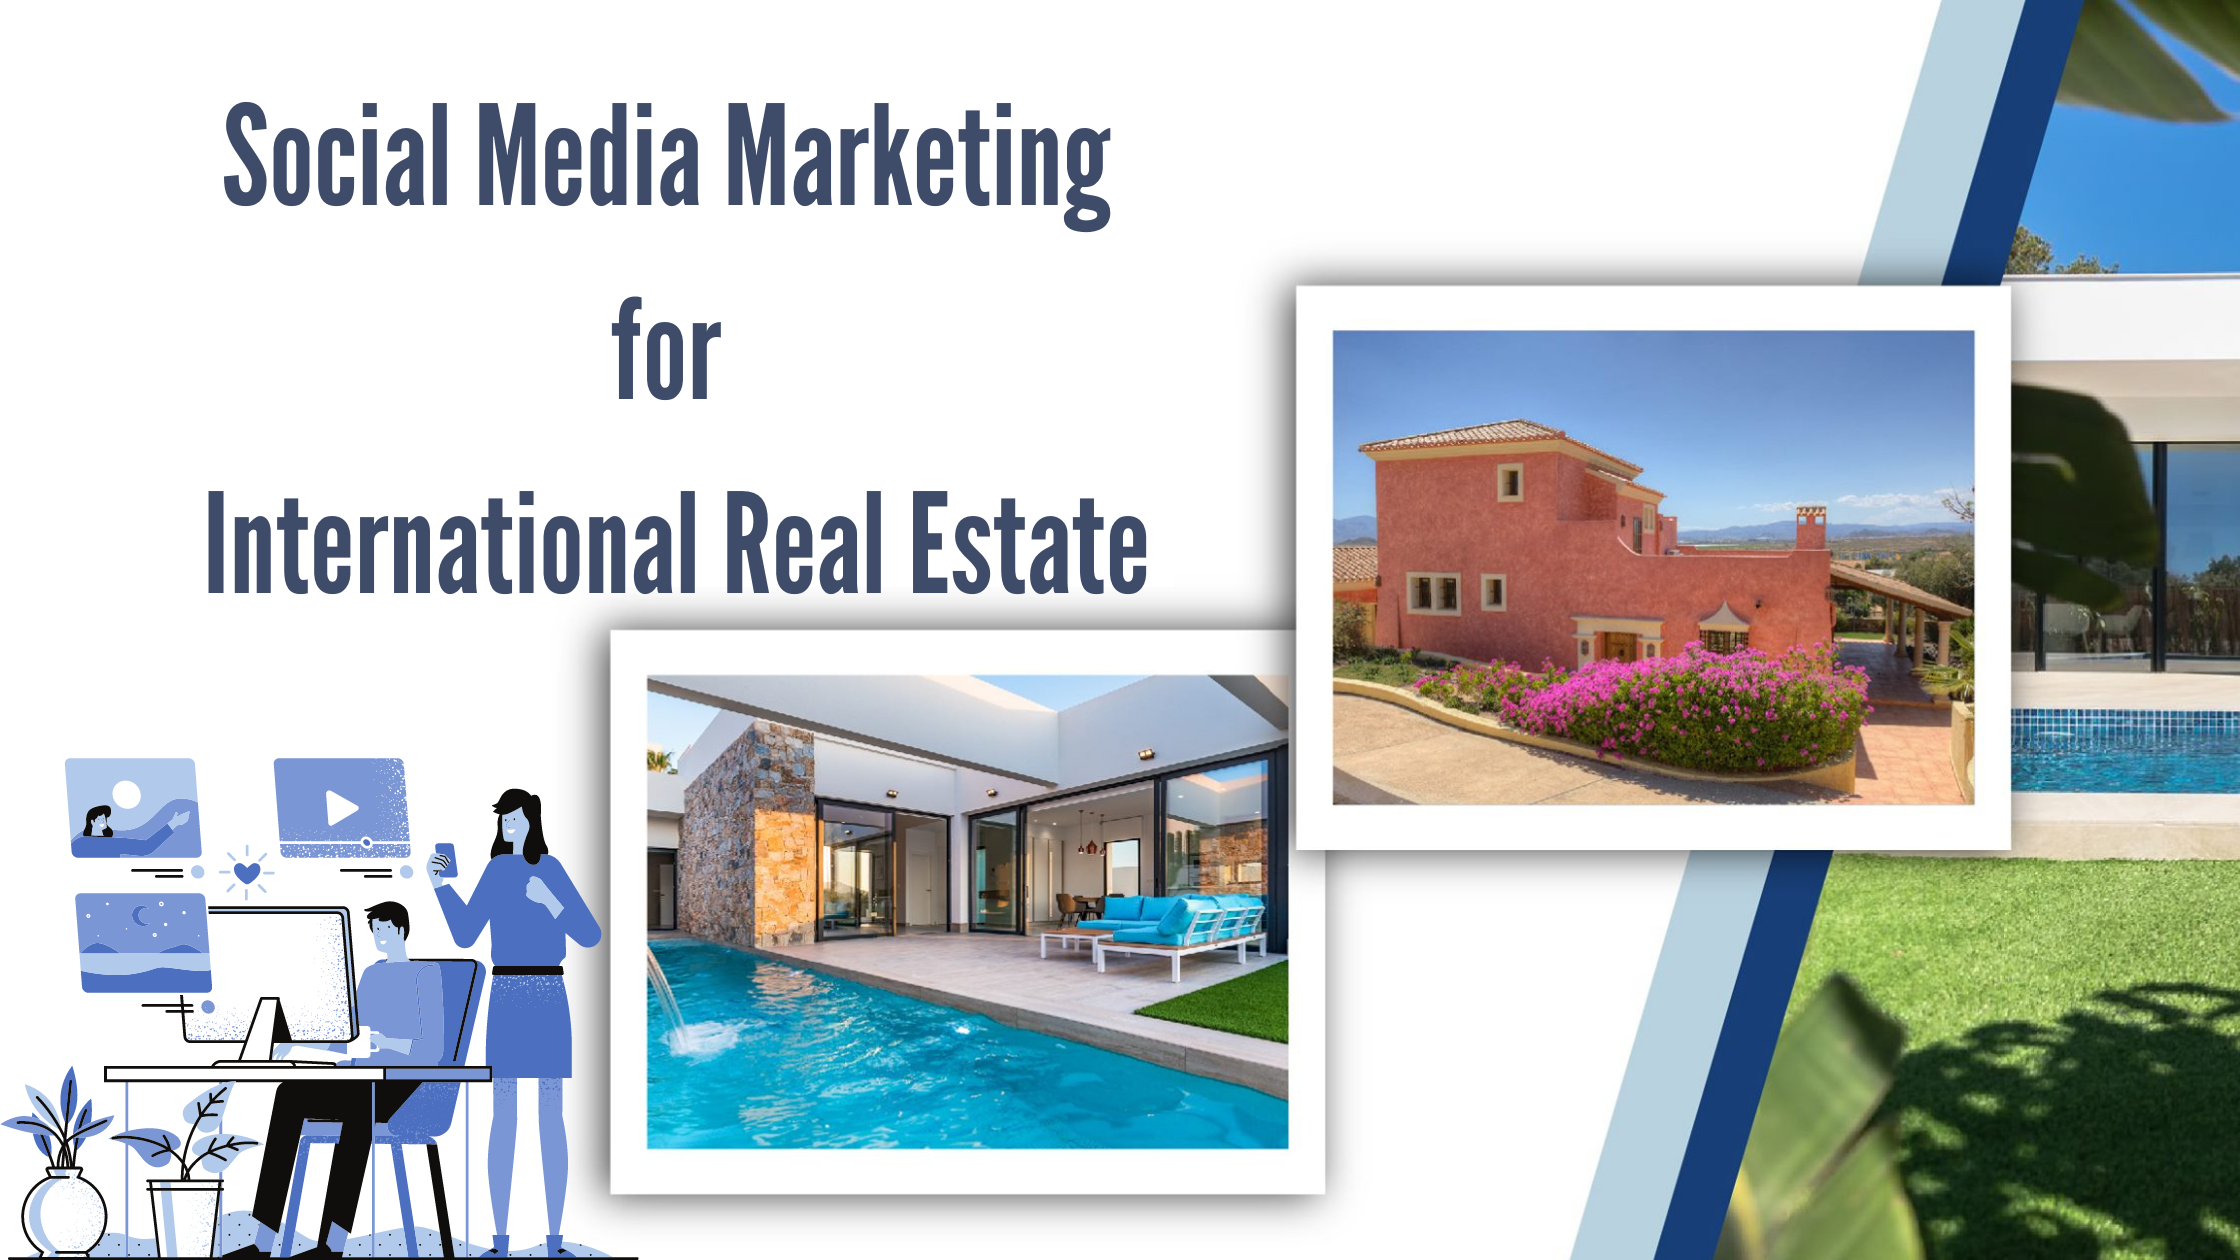 Social Media Marketing for International Real Estate